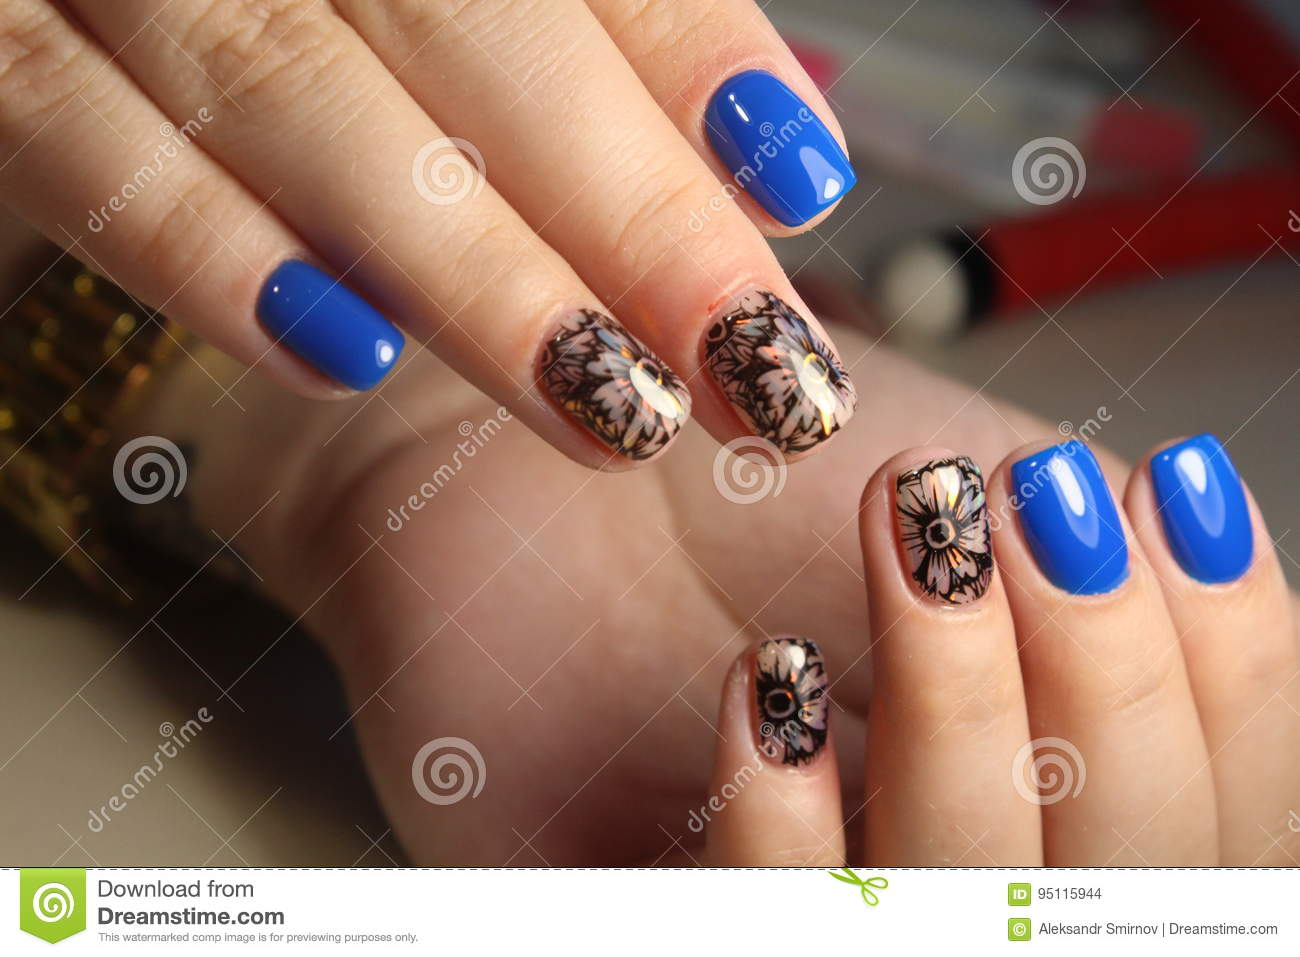 Manicure design nails gel with lacquer